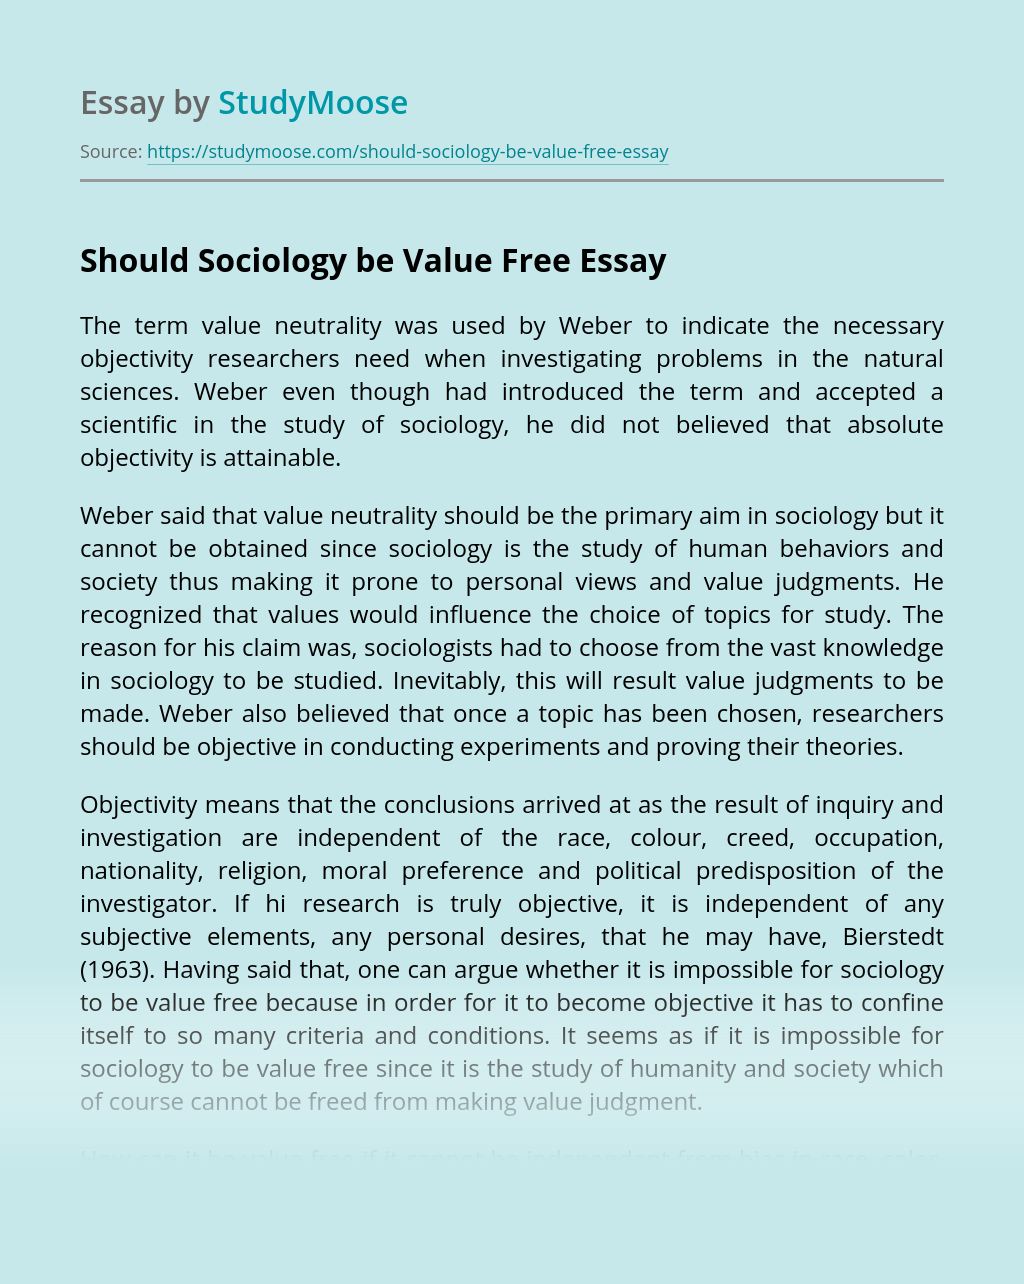 Should Sociology be Value Free